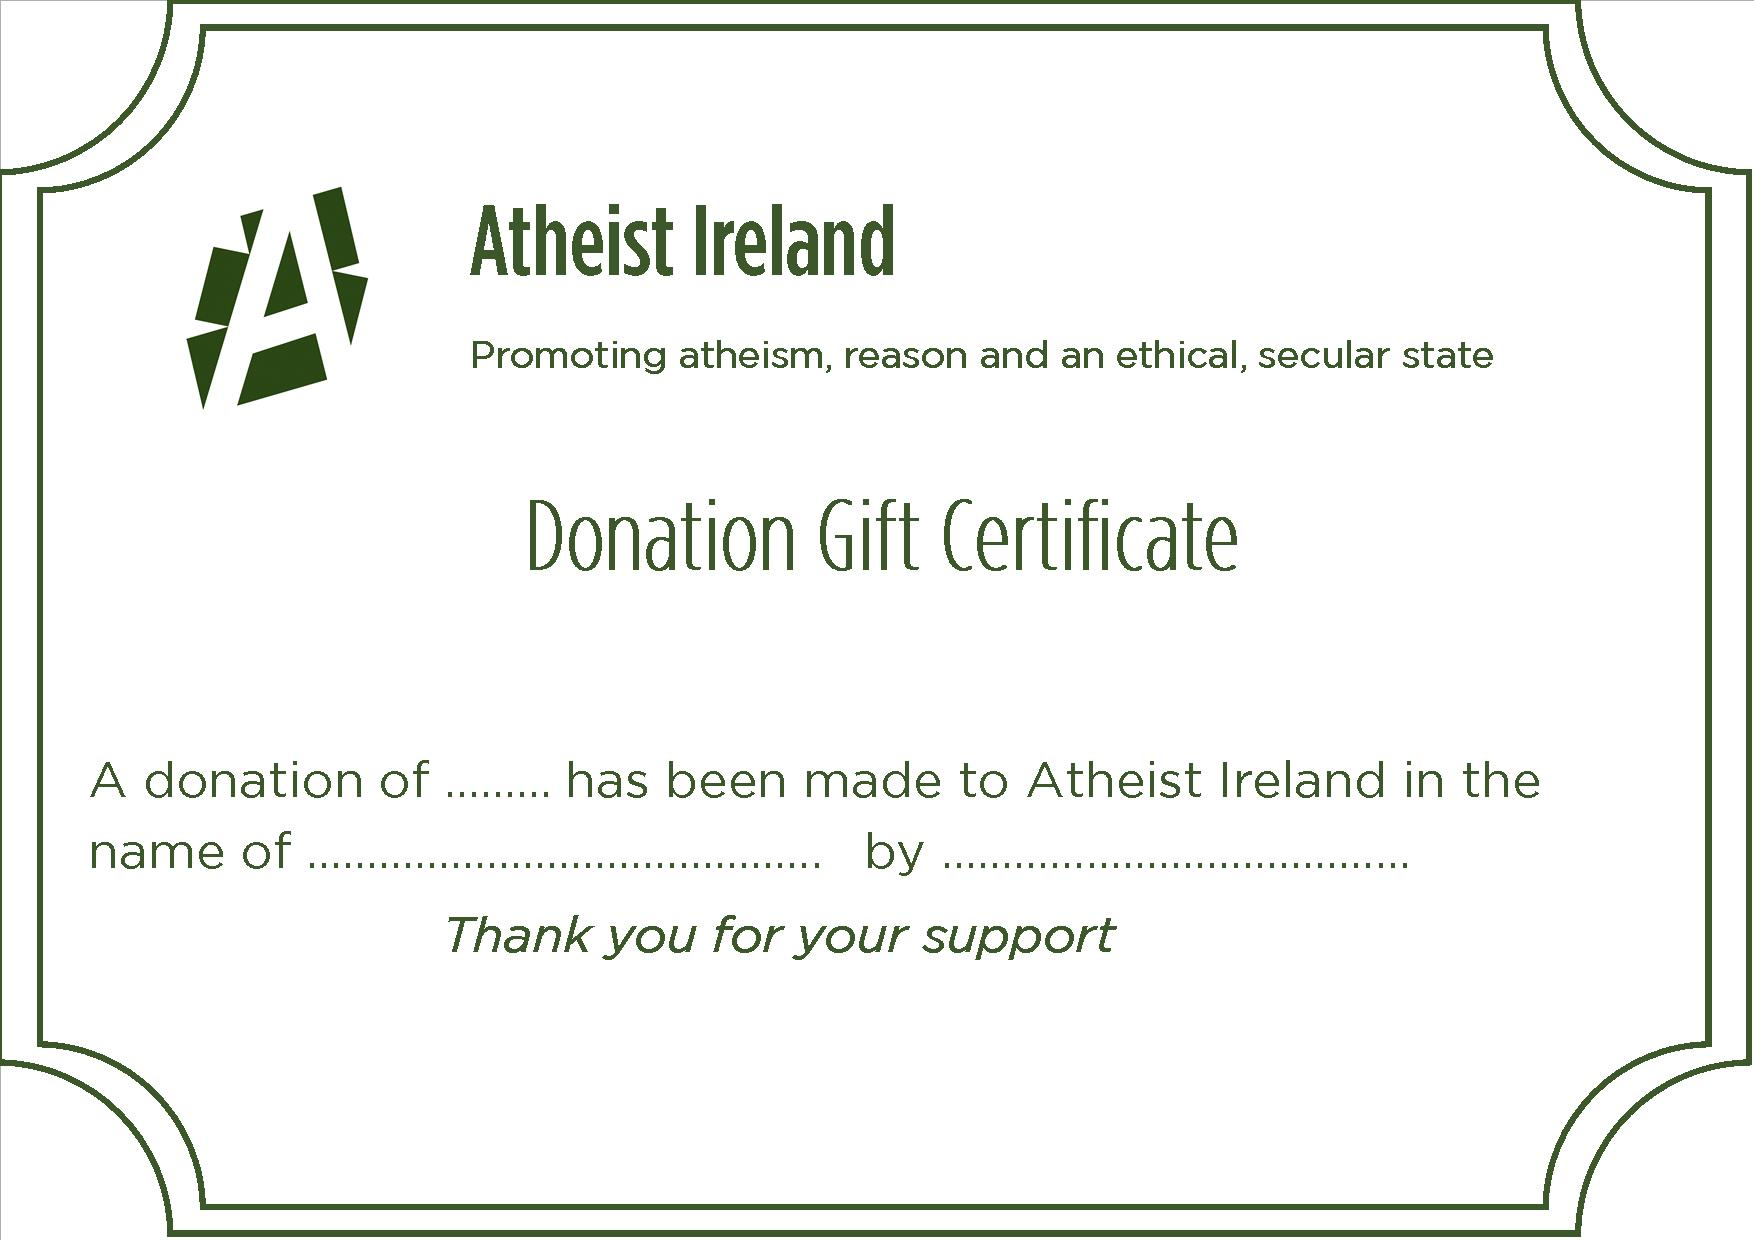 Honour Donation And Gift Certificate Promoting Atheism Reason And